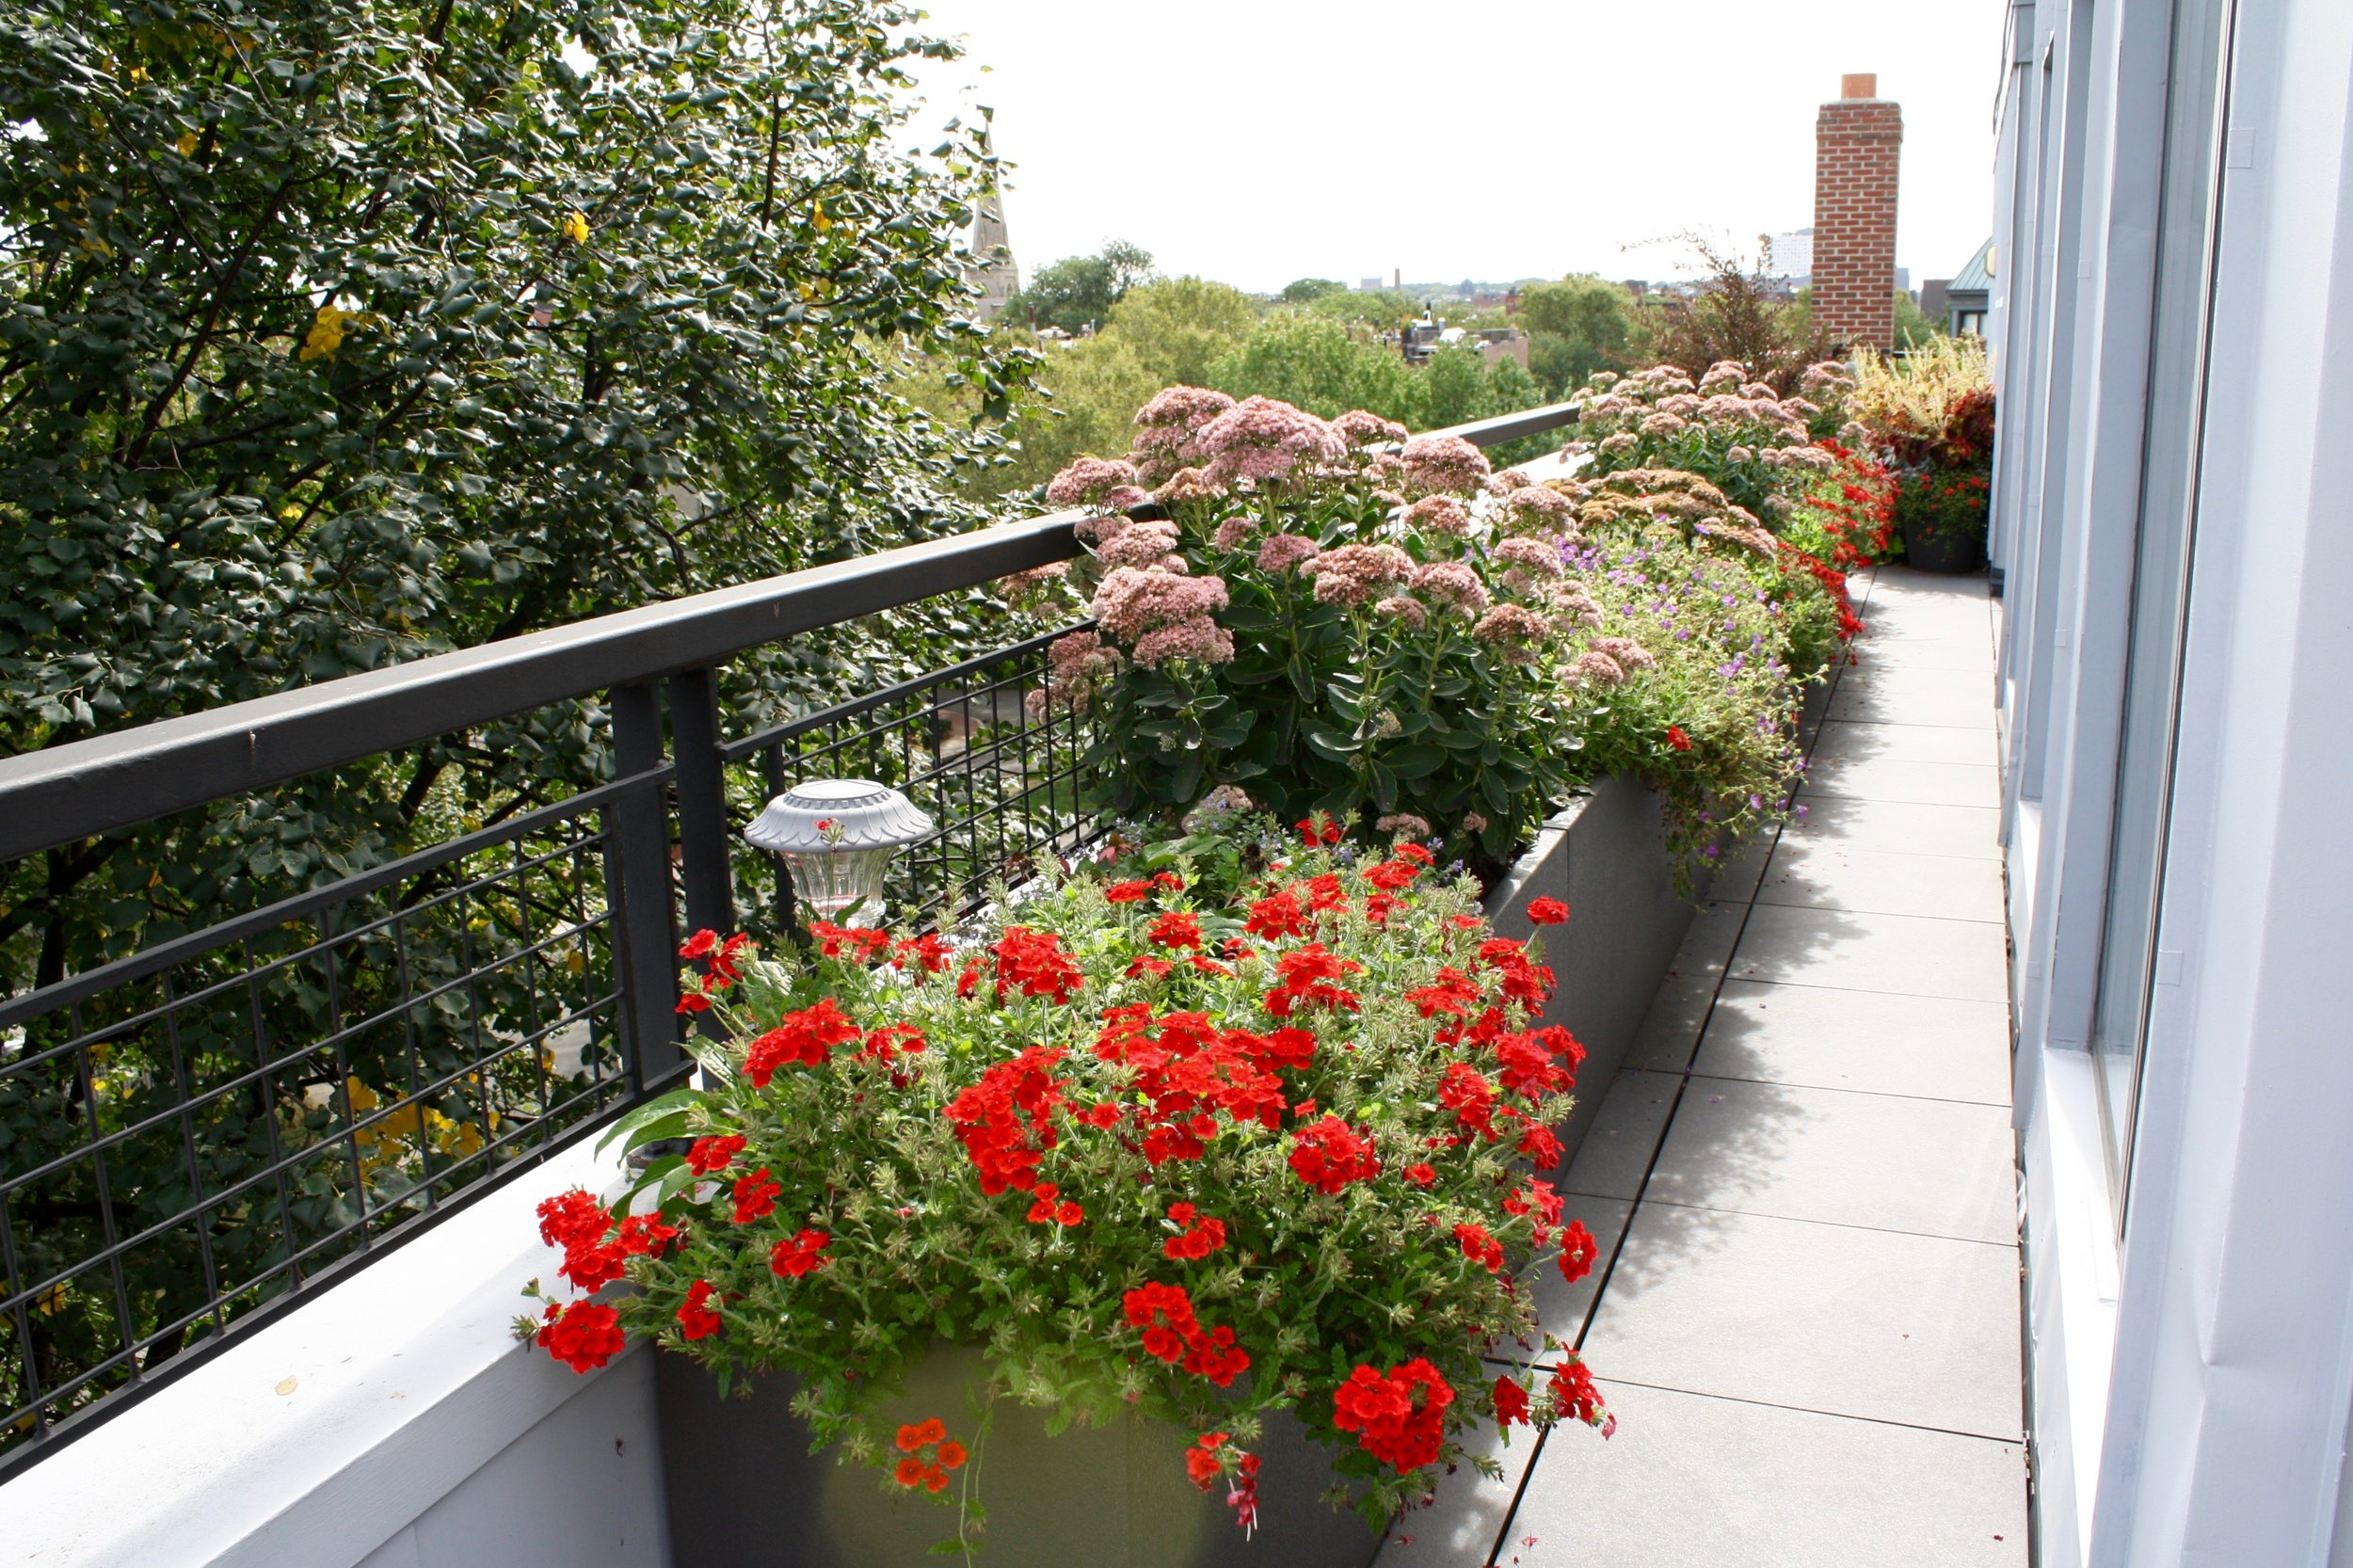 recover-green-roofs-rooftop-patio-boston-2016-5.jpg